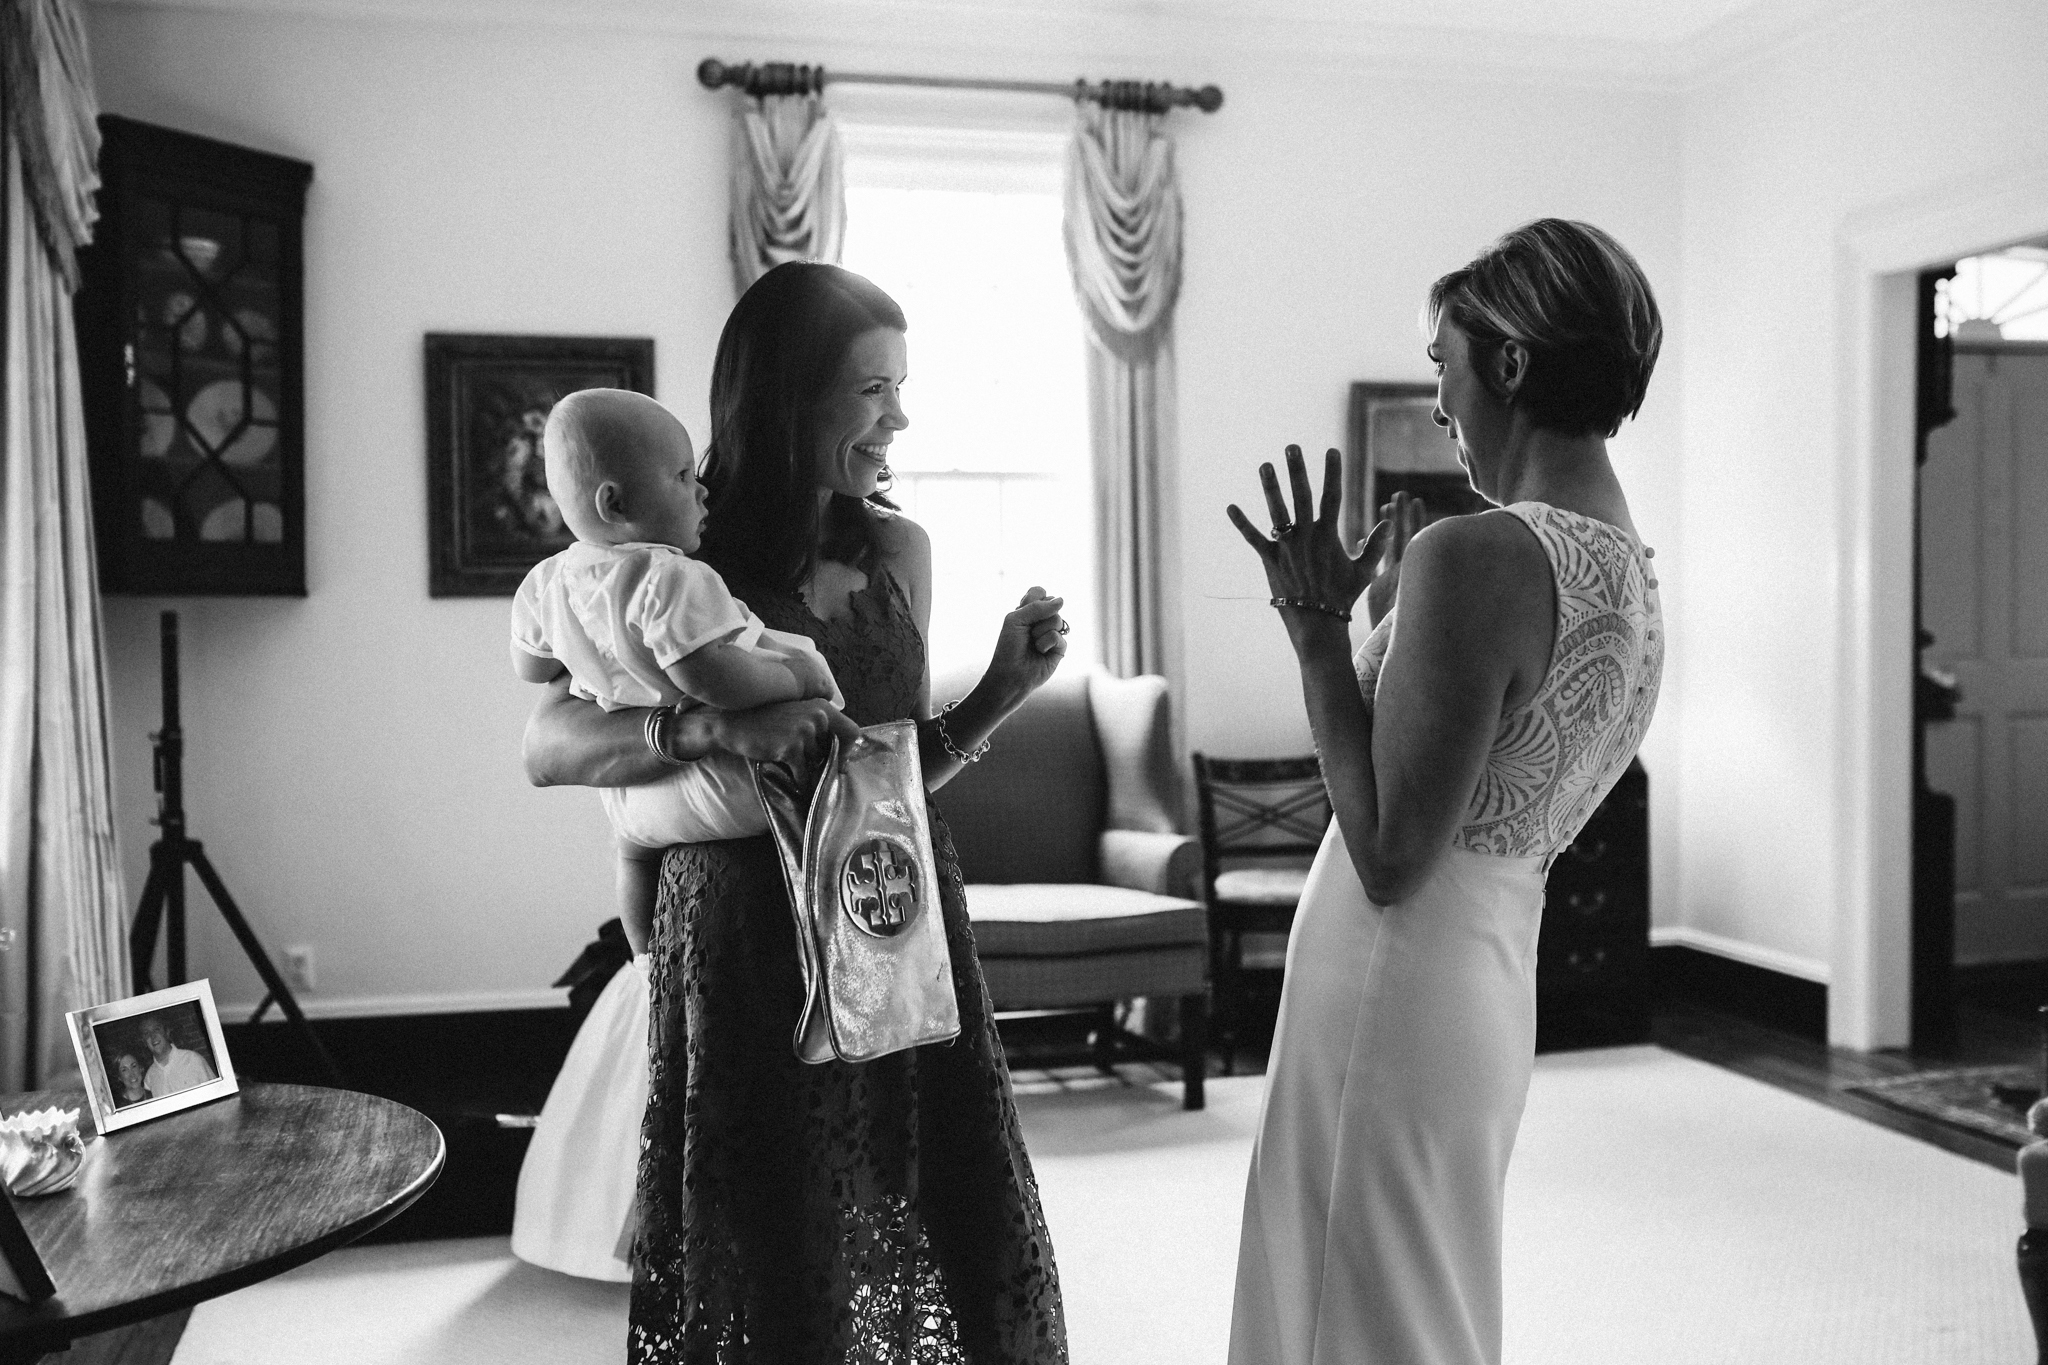 cook_wedding_richmond_virginia_rebecca_burt_photography-10.jpg